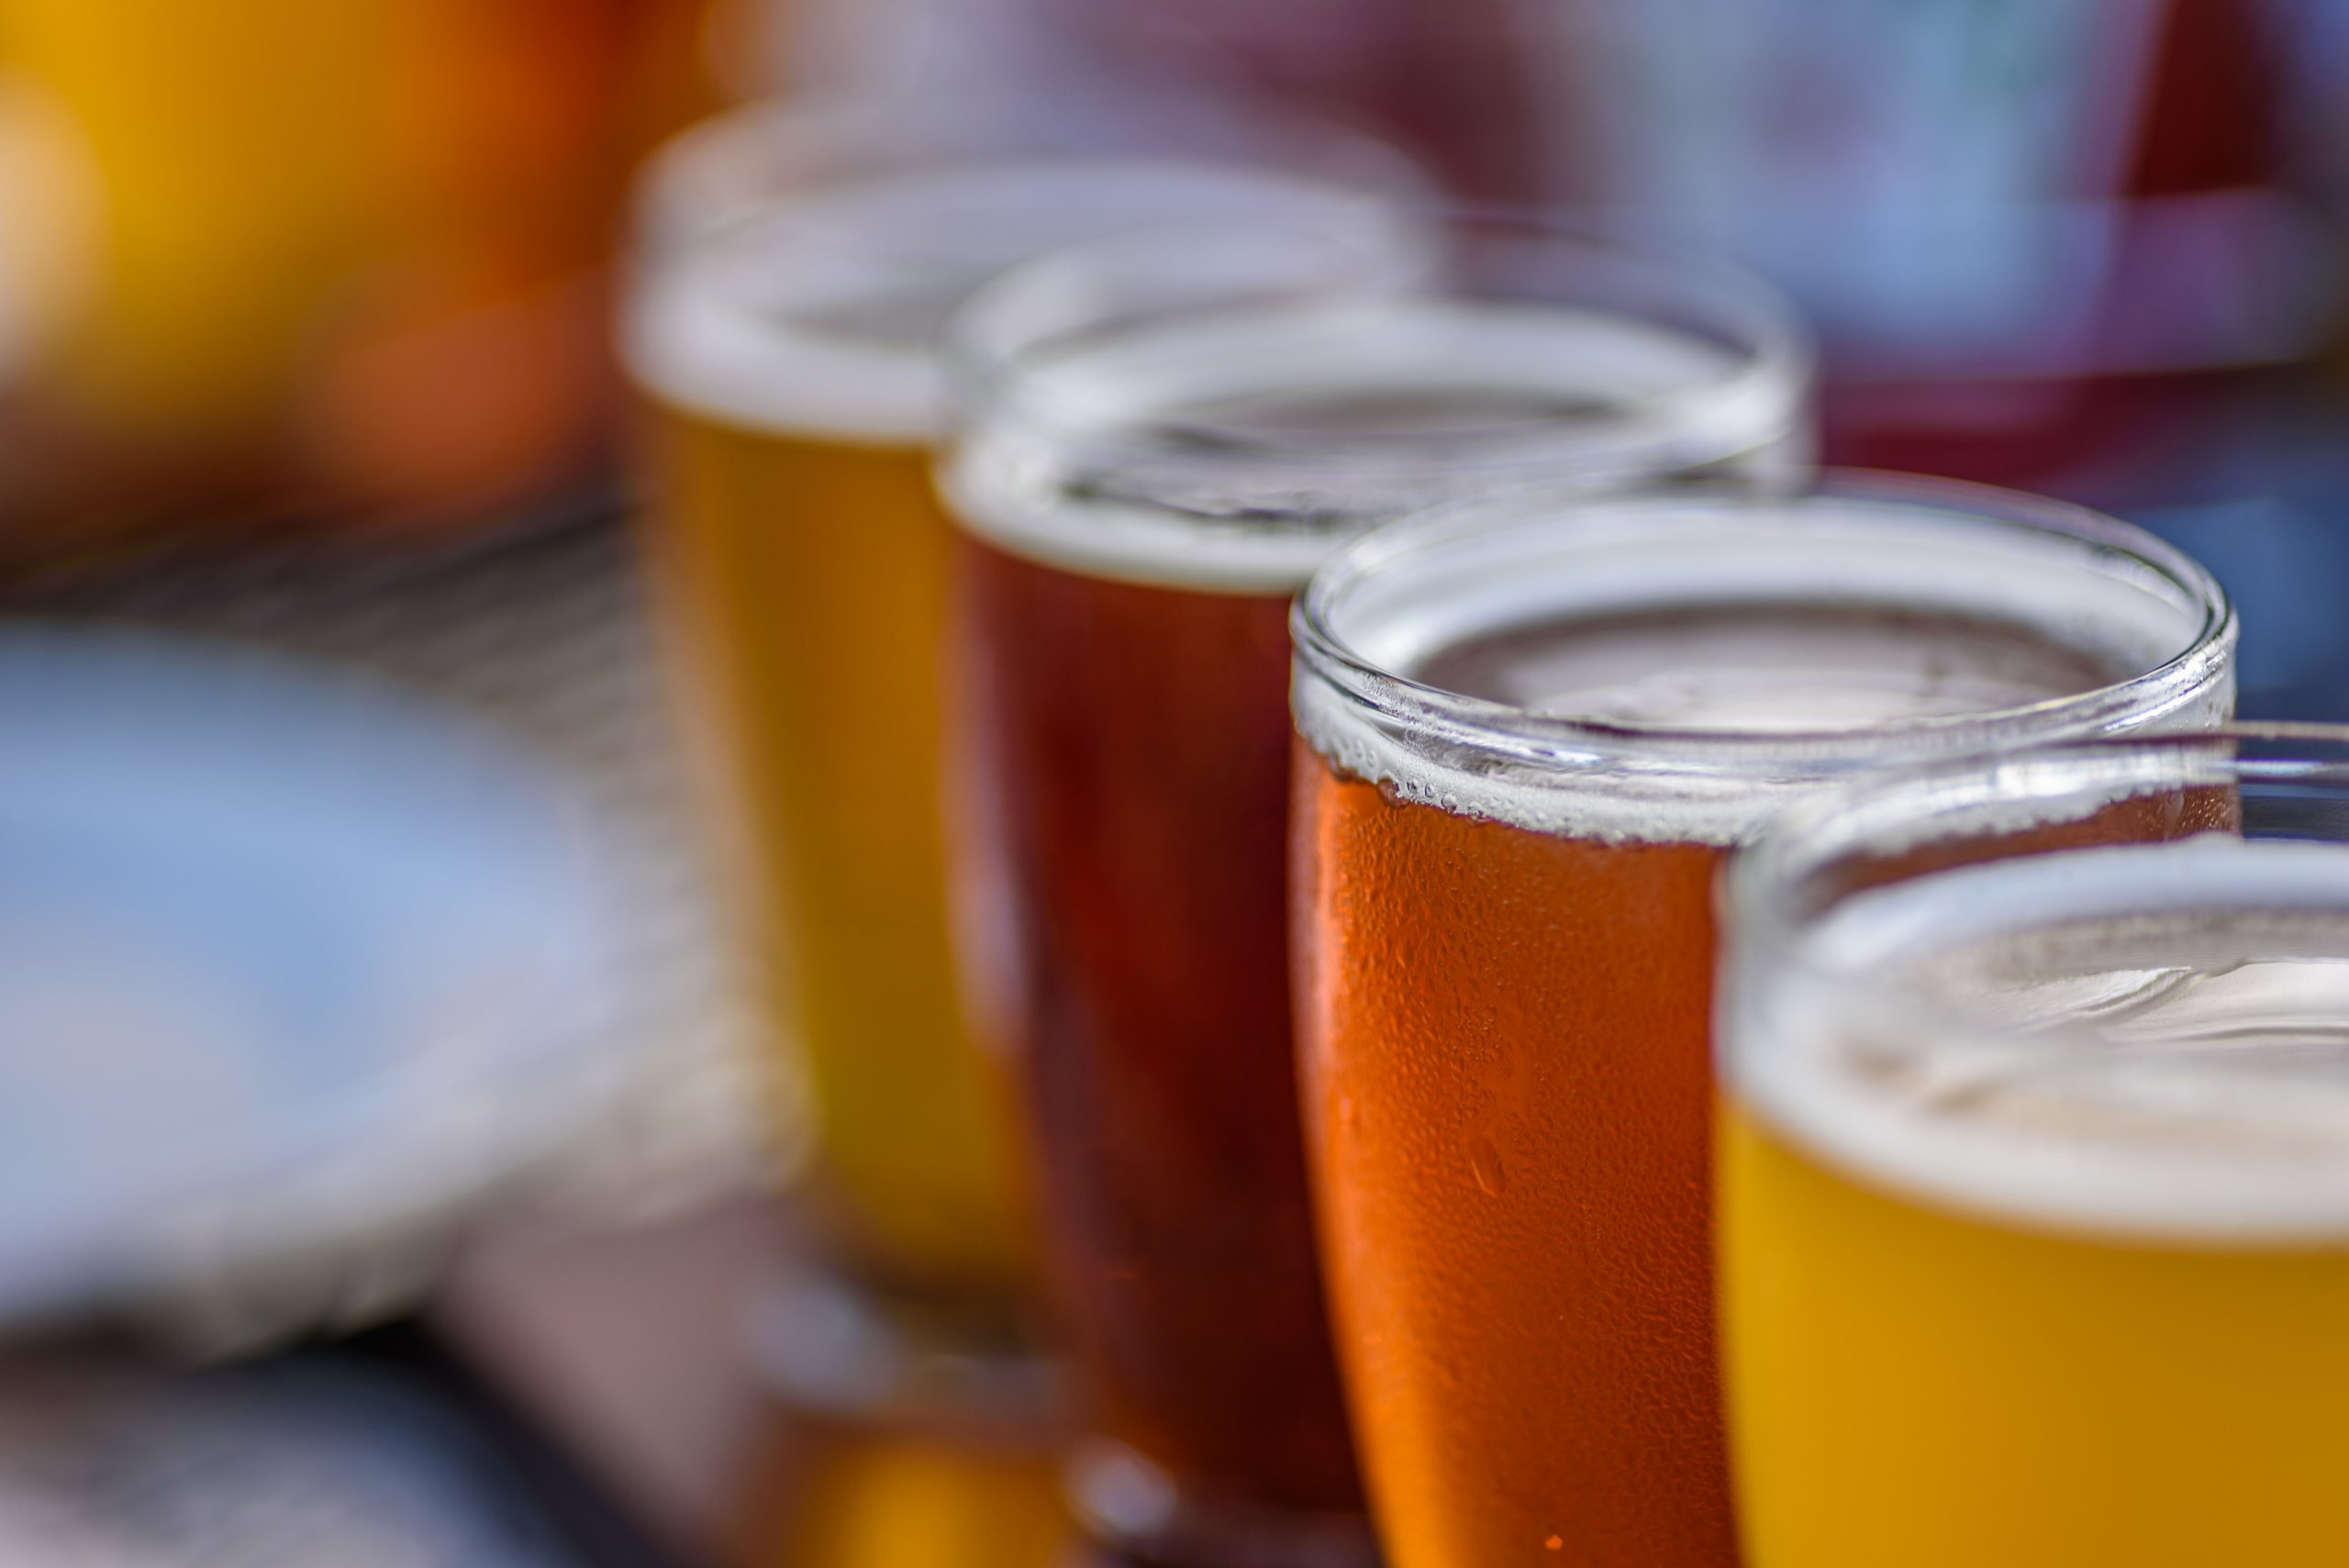 How would climate change affect the price of beer?